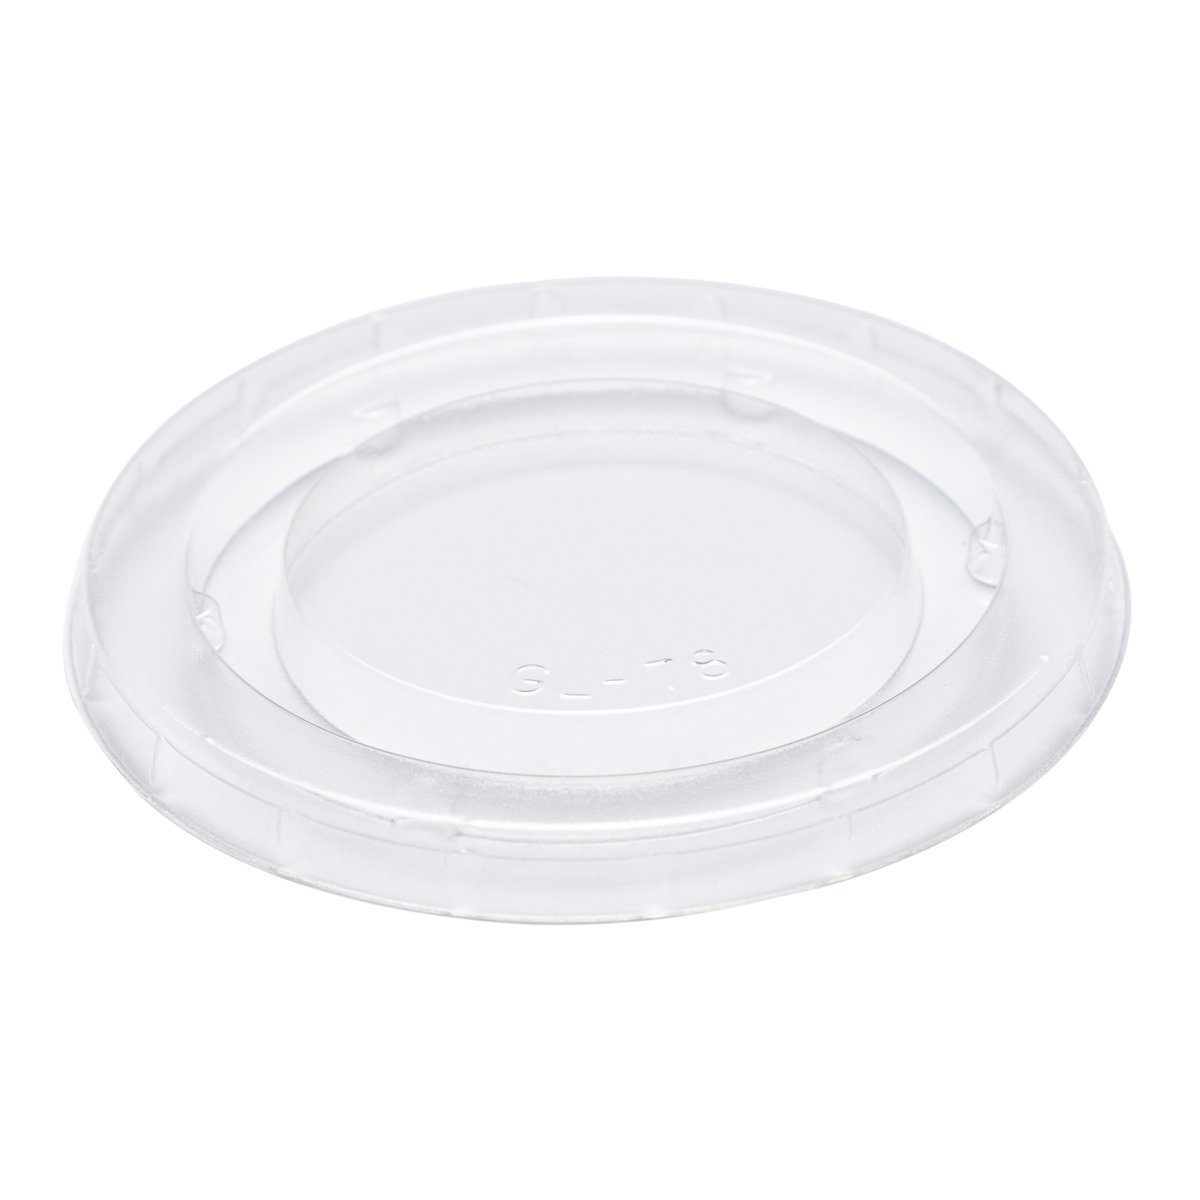 3.25 4oz Clear PLA Portion Cup Lid Portion Cups Primeware